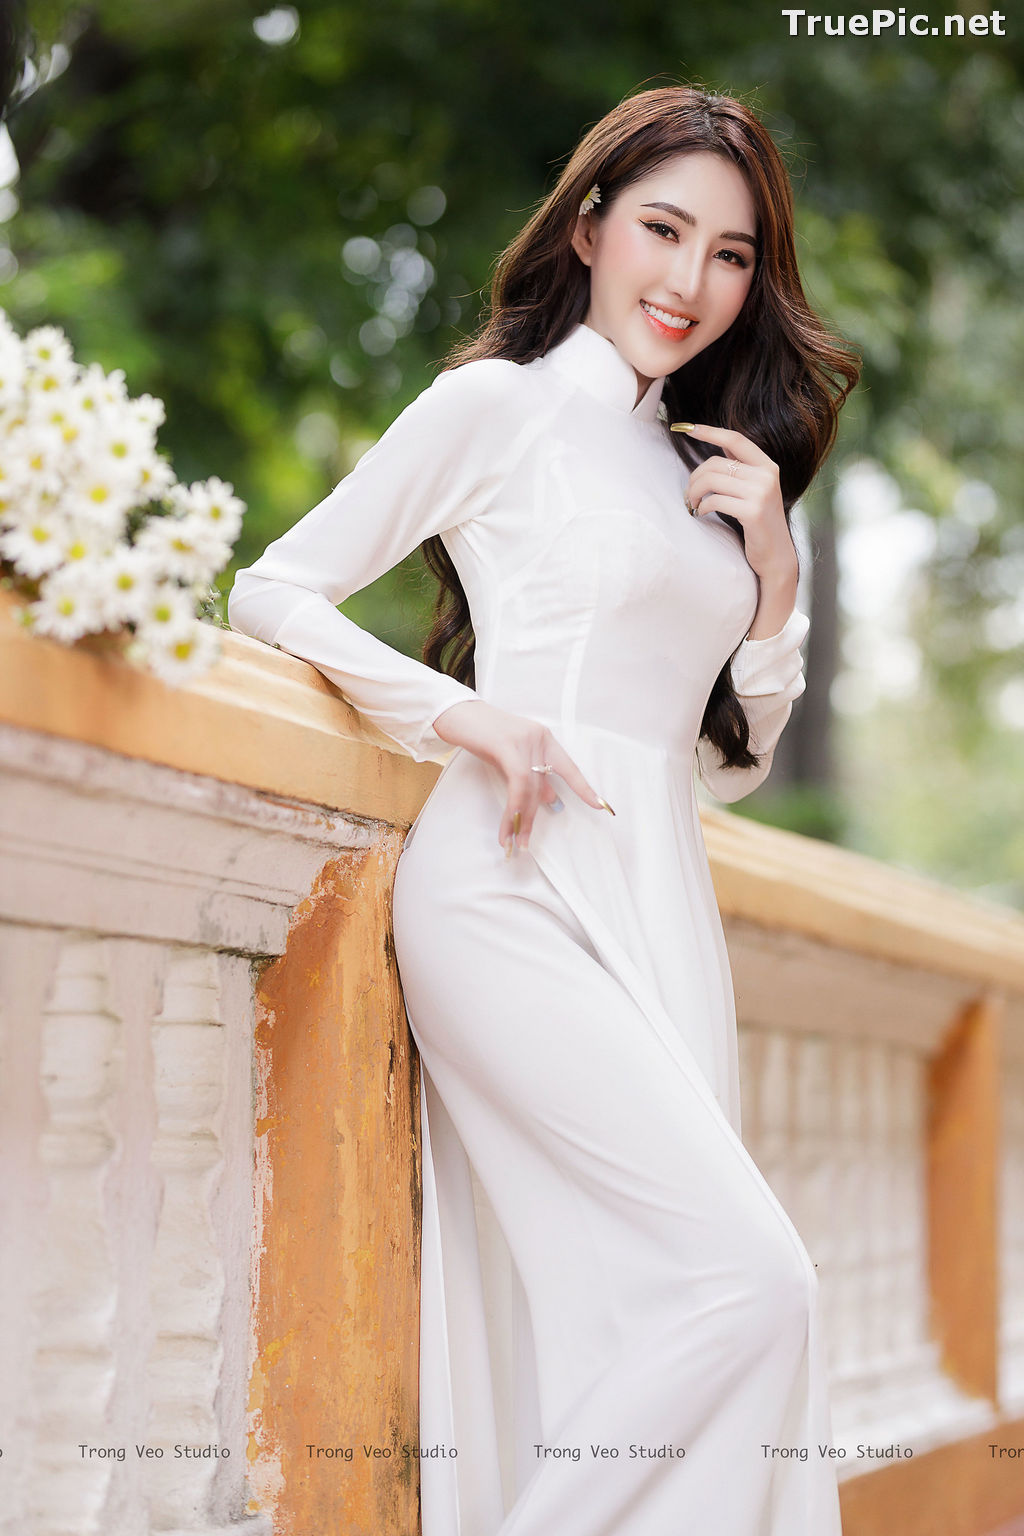 Image The Beauty of Vietnamese Girls with Traditional Dress (Ao Dai) #3 - TruePic.net - Picture-4